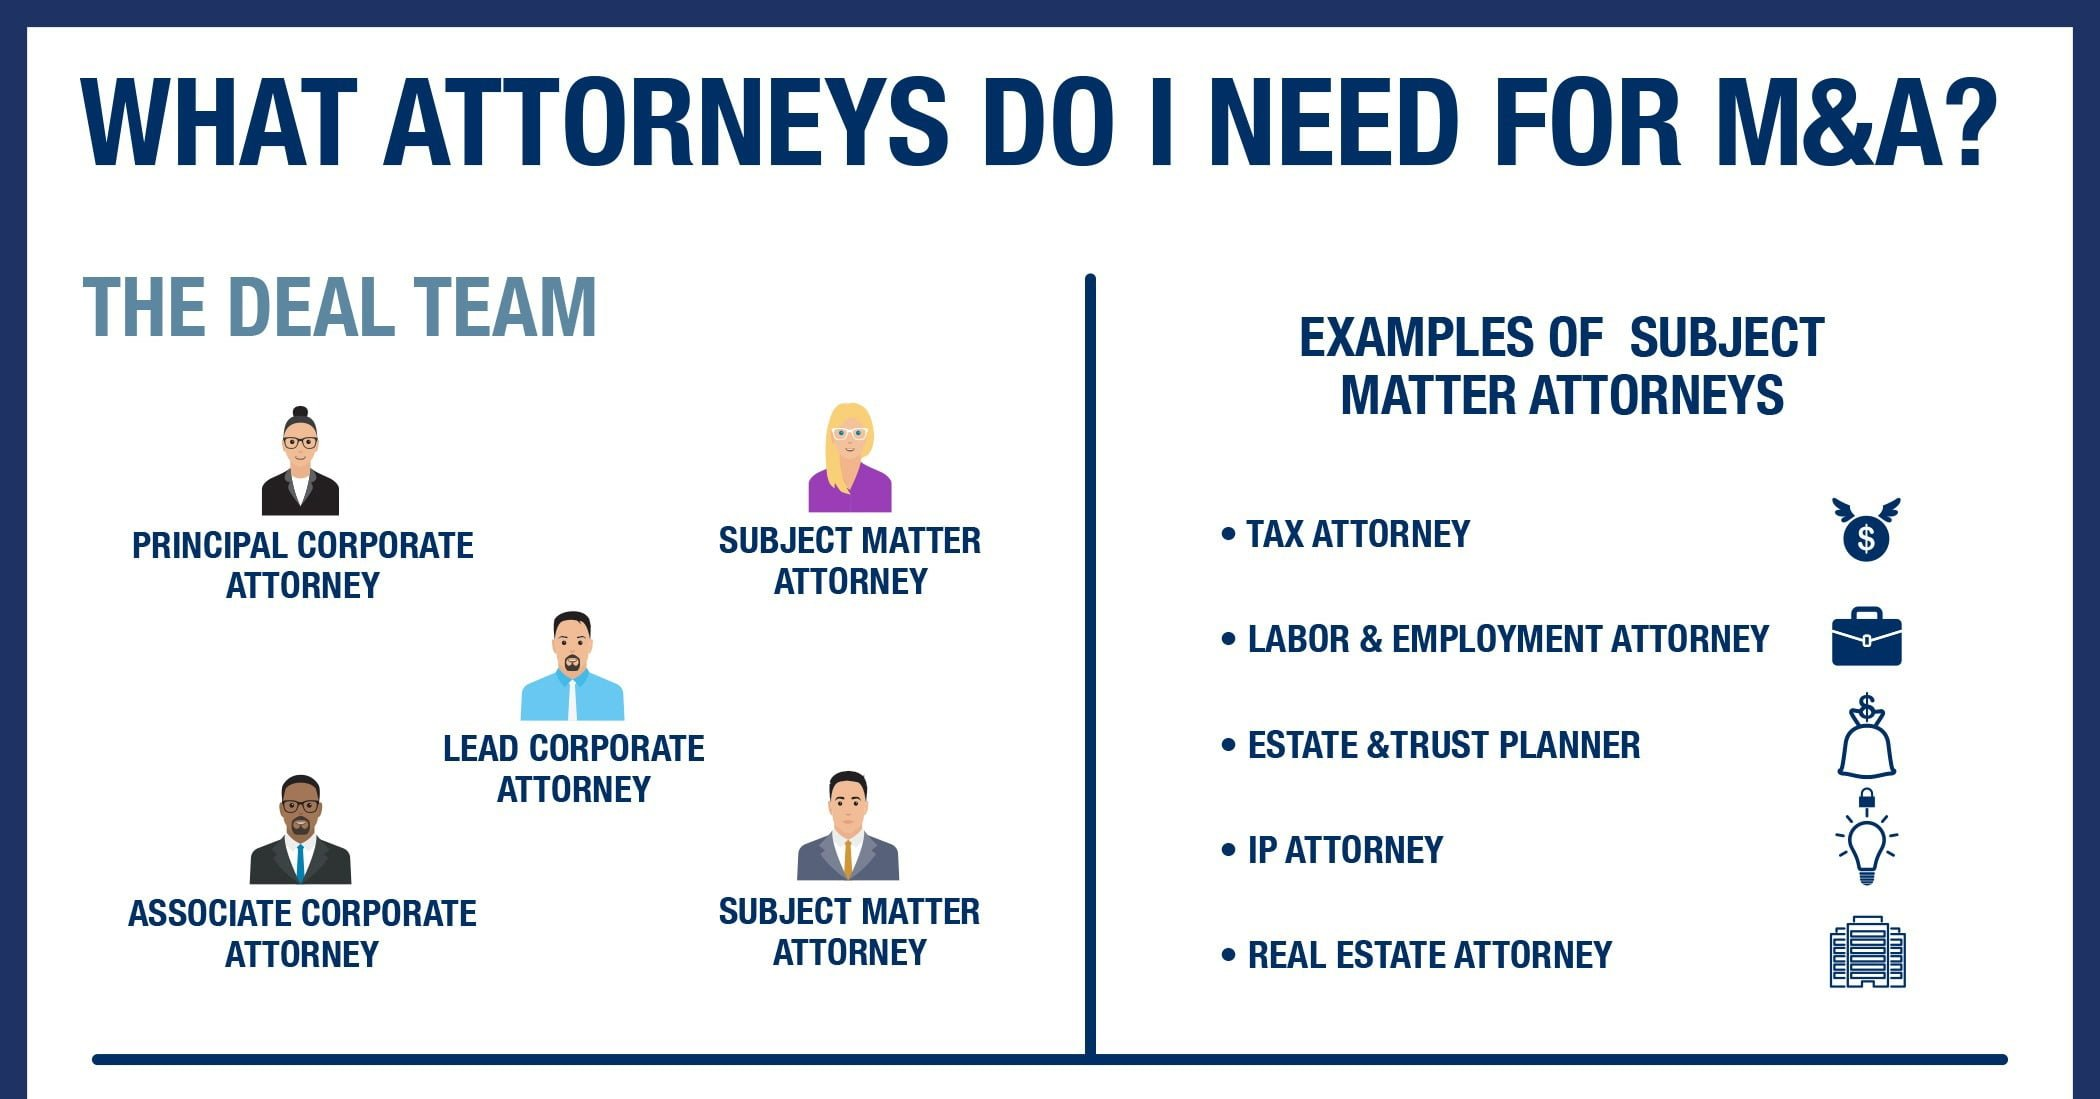 Merger and Acquisition Infographic titled what attorneys do I need for M&A- shows the ideal team you need and the examples of subject matter attorneys